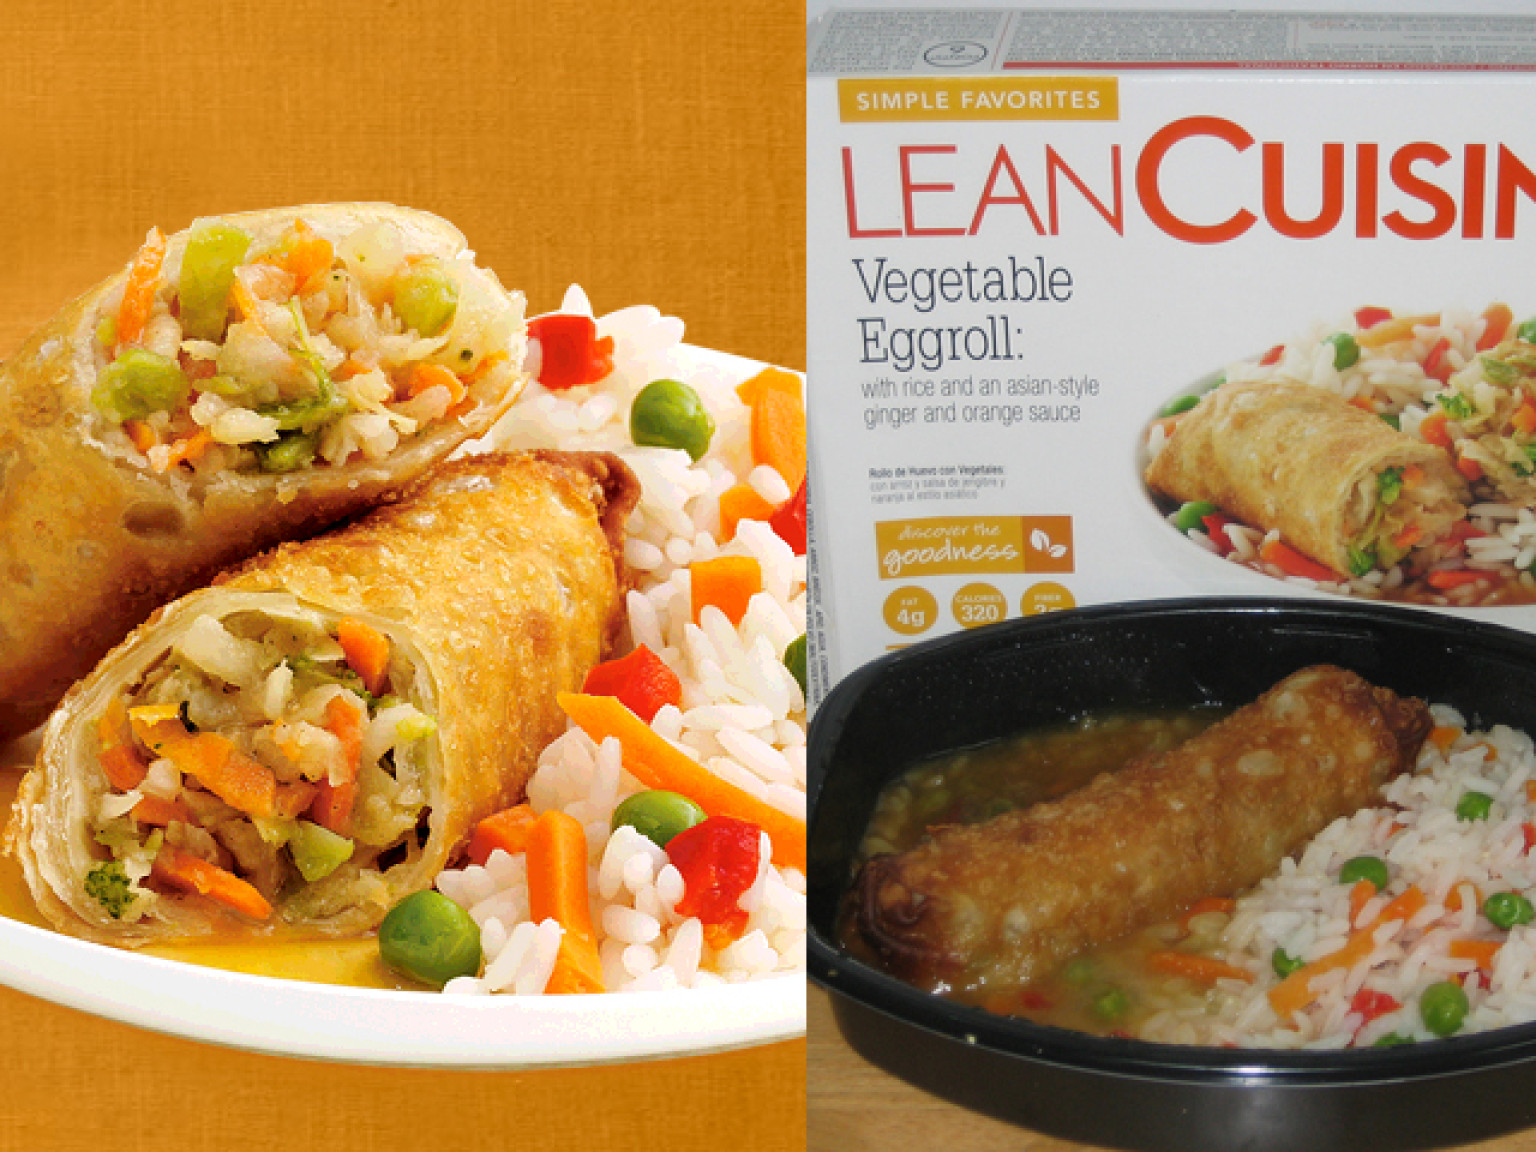 Food ads vs real food photos huffpost for Lean cuisine vs fast food